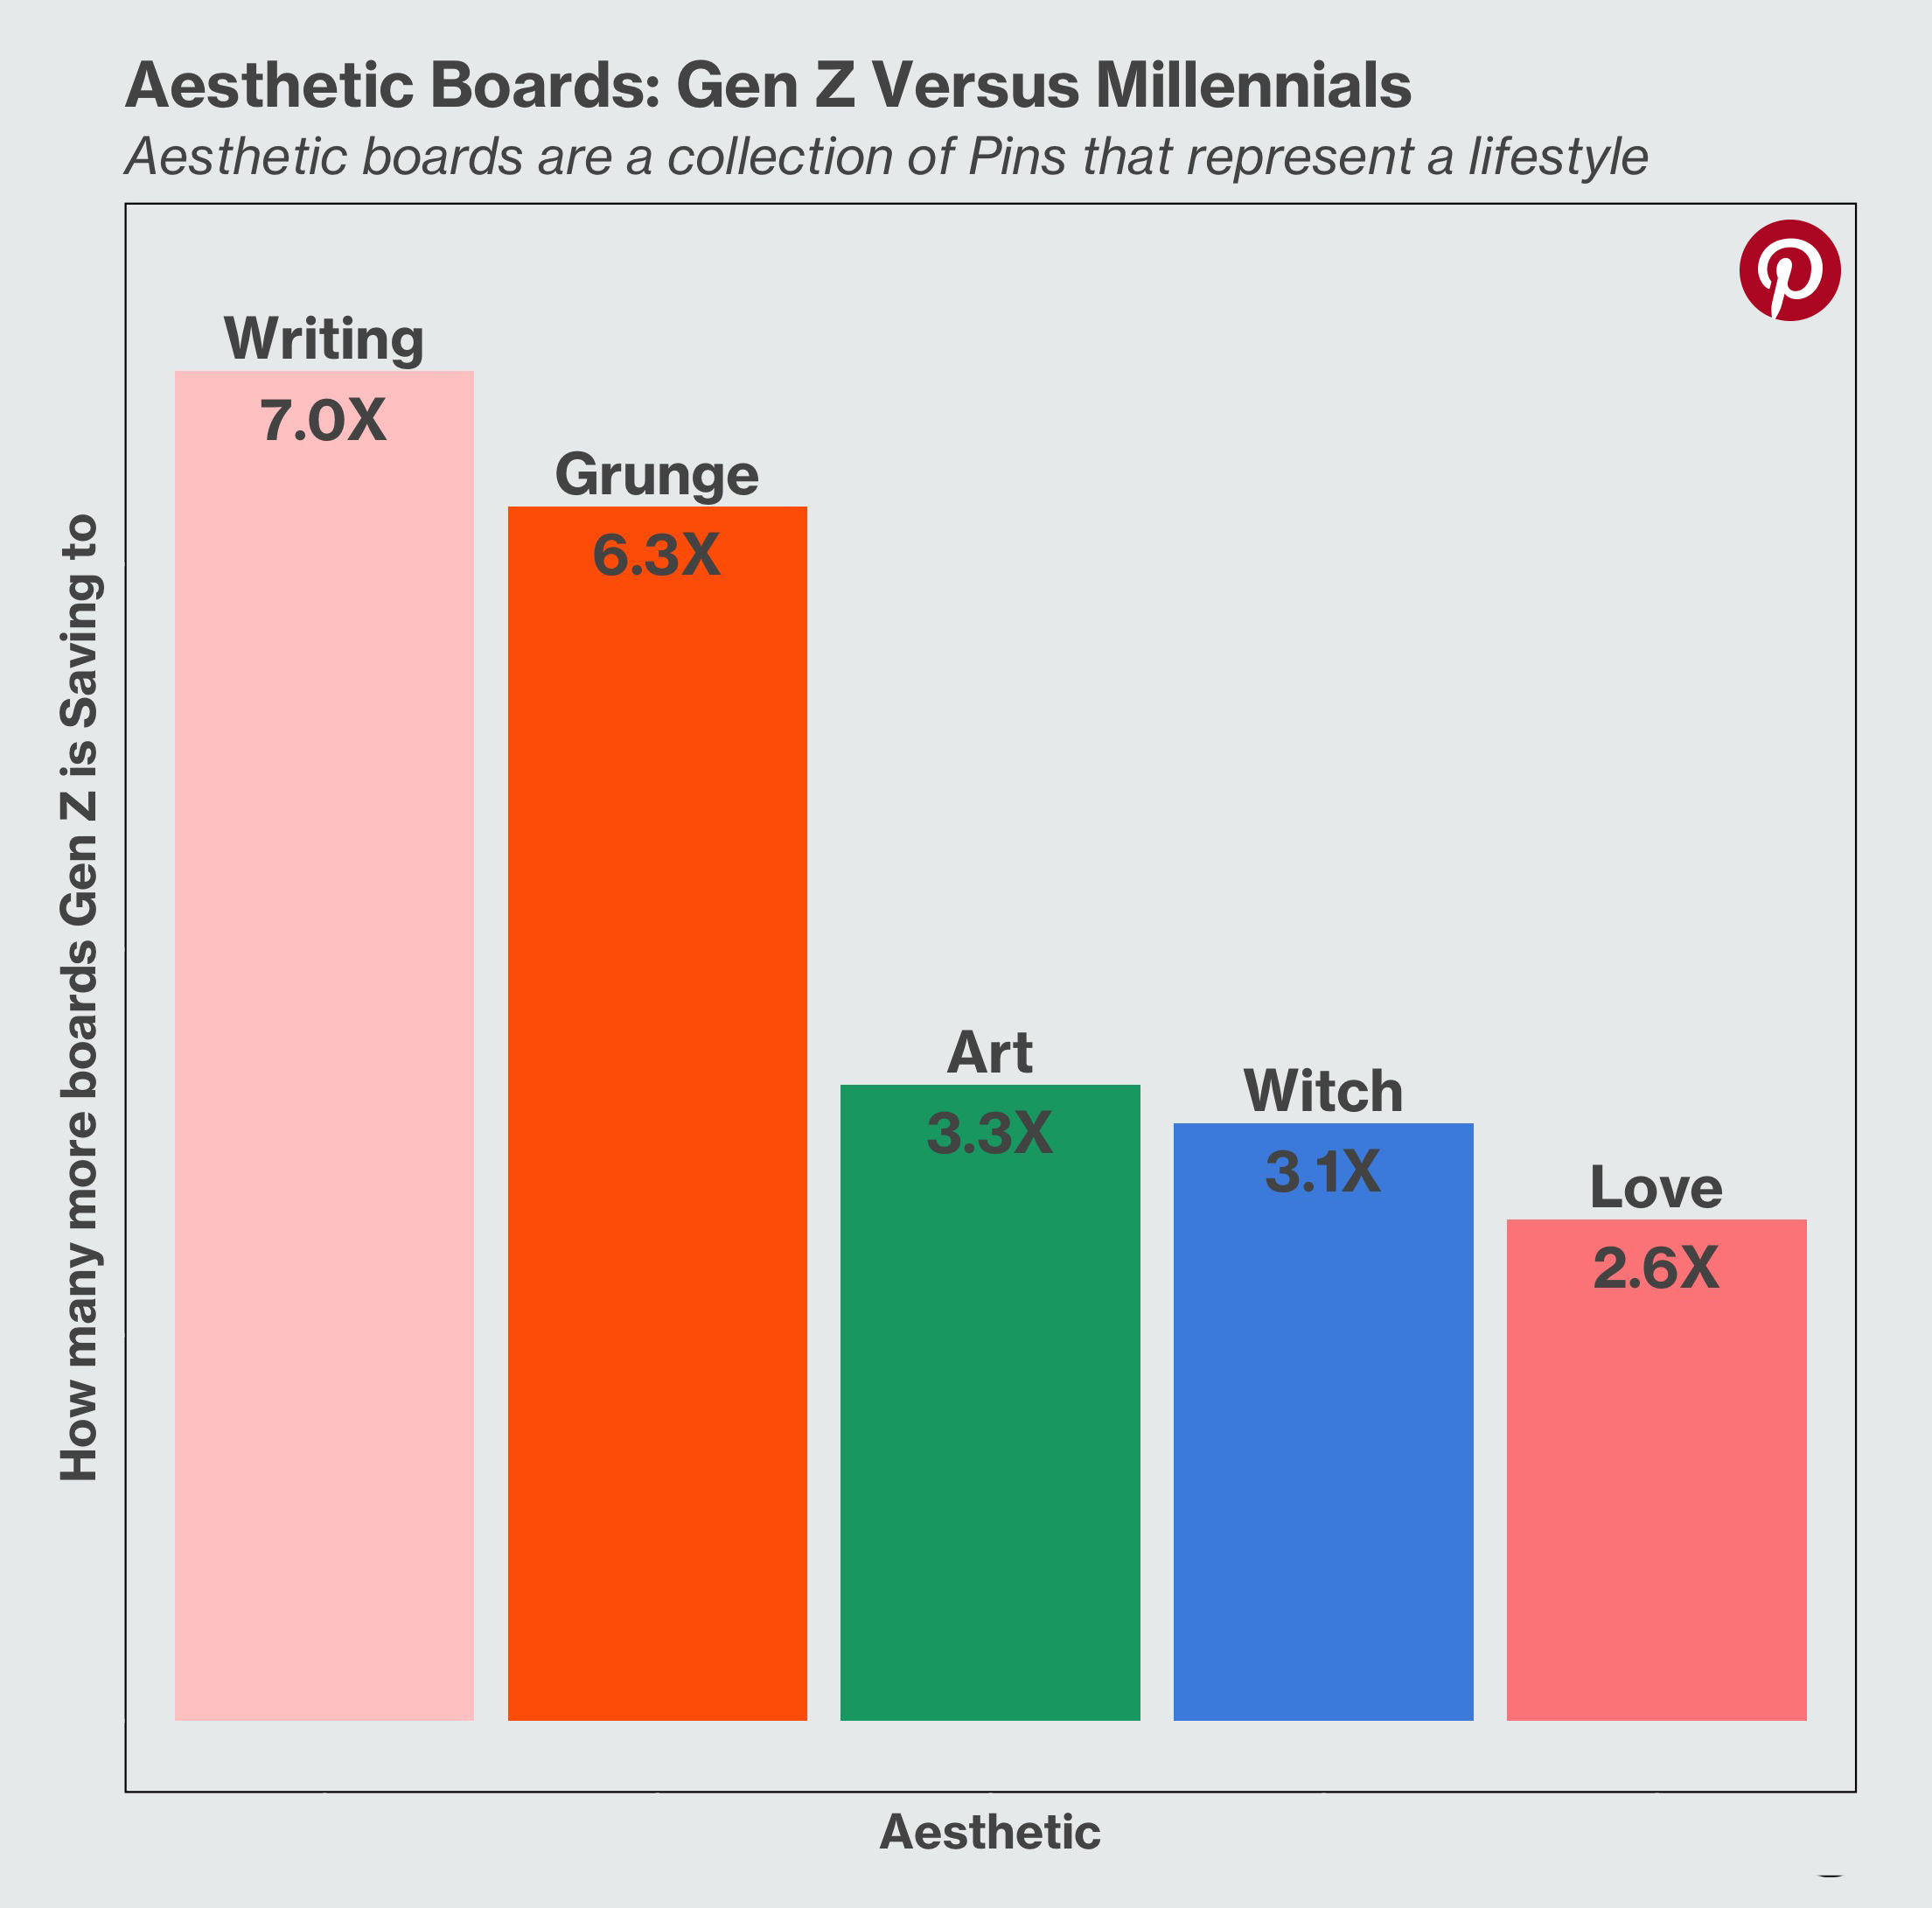 Aesthetic Boards: Gen Z Versus Millennials